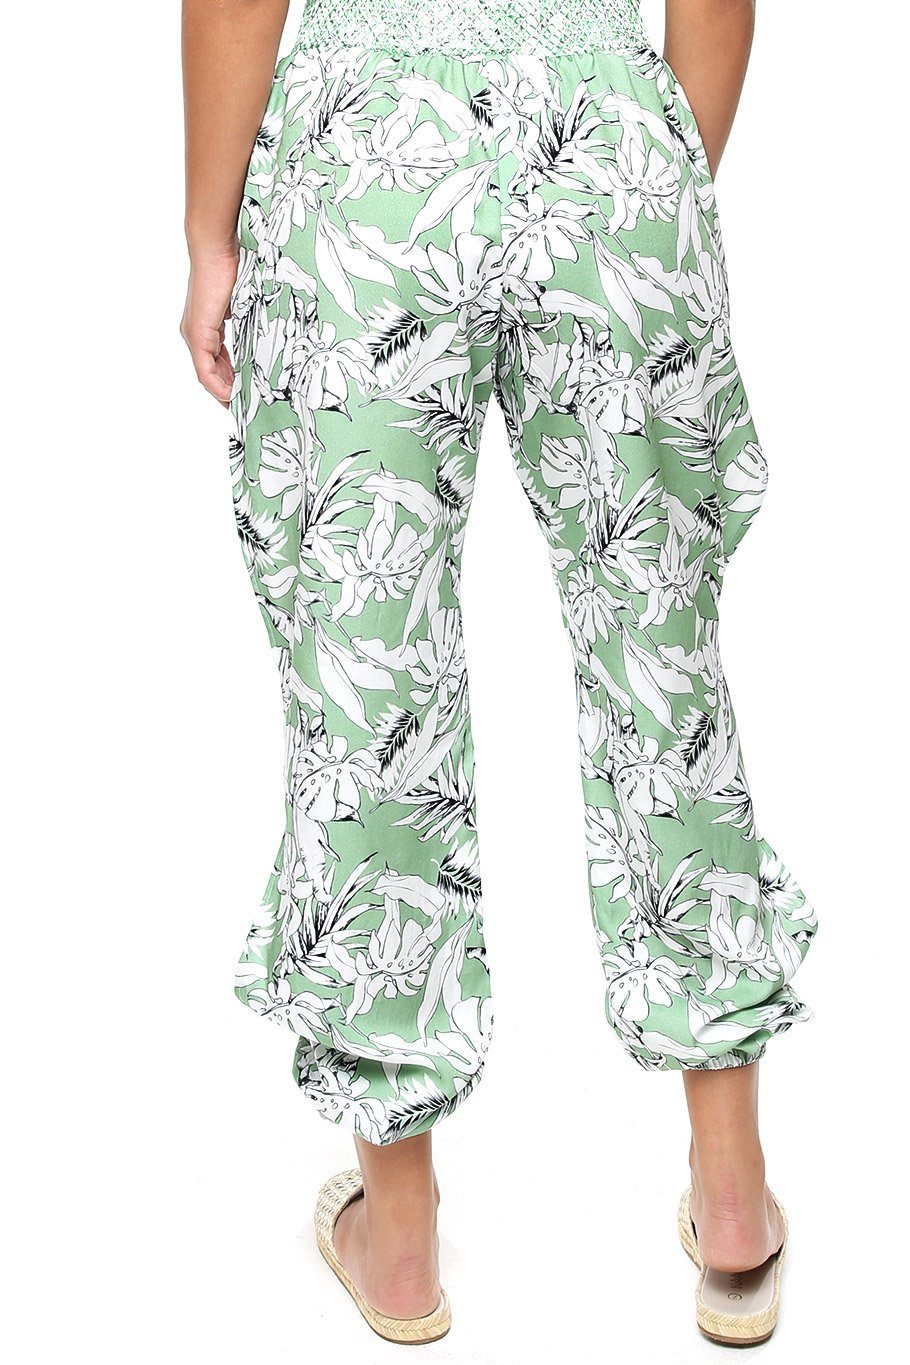 San Juan Split Leg Pant - Green Jungle - Shore